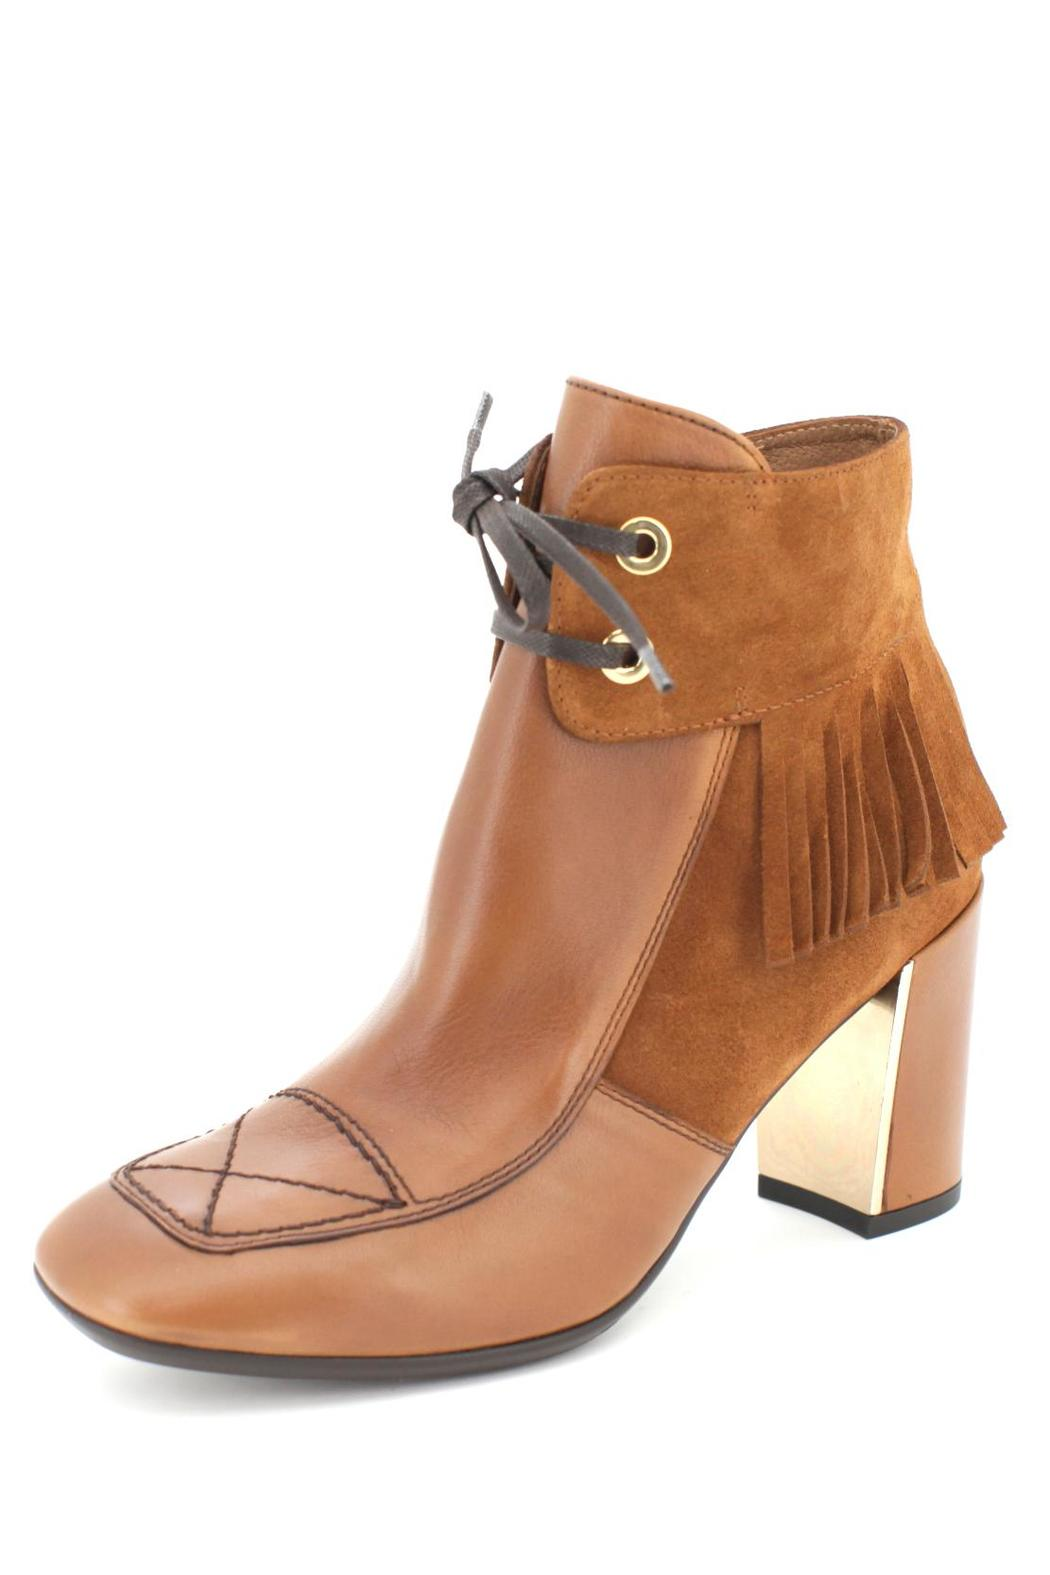 Fringed Brown Ankle-Bootie